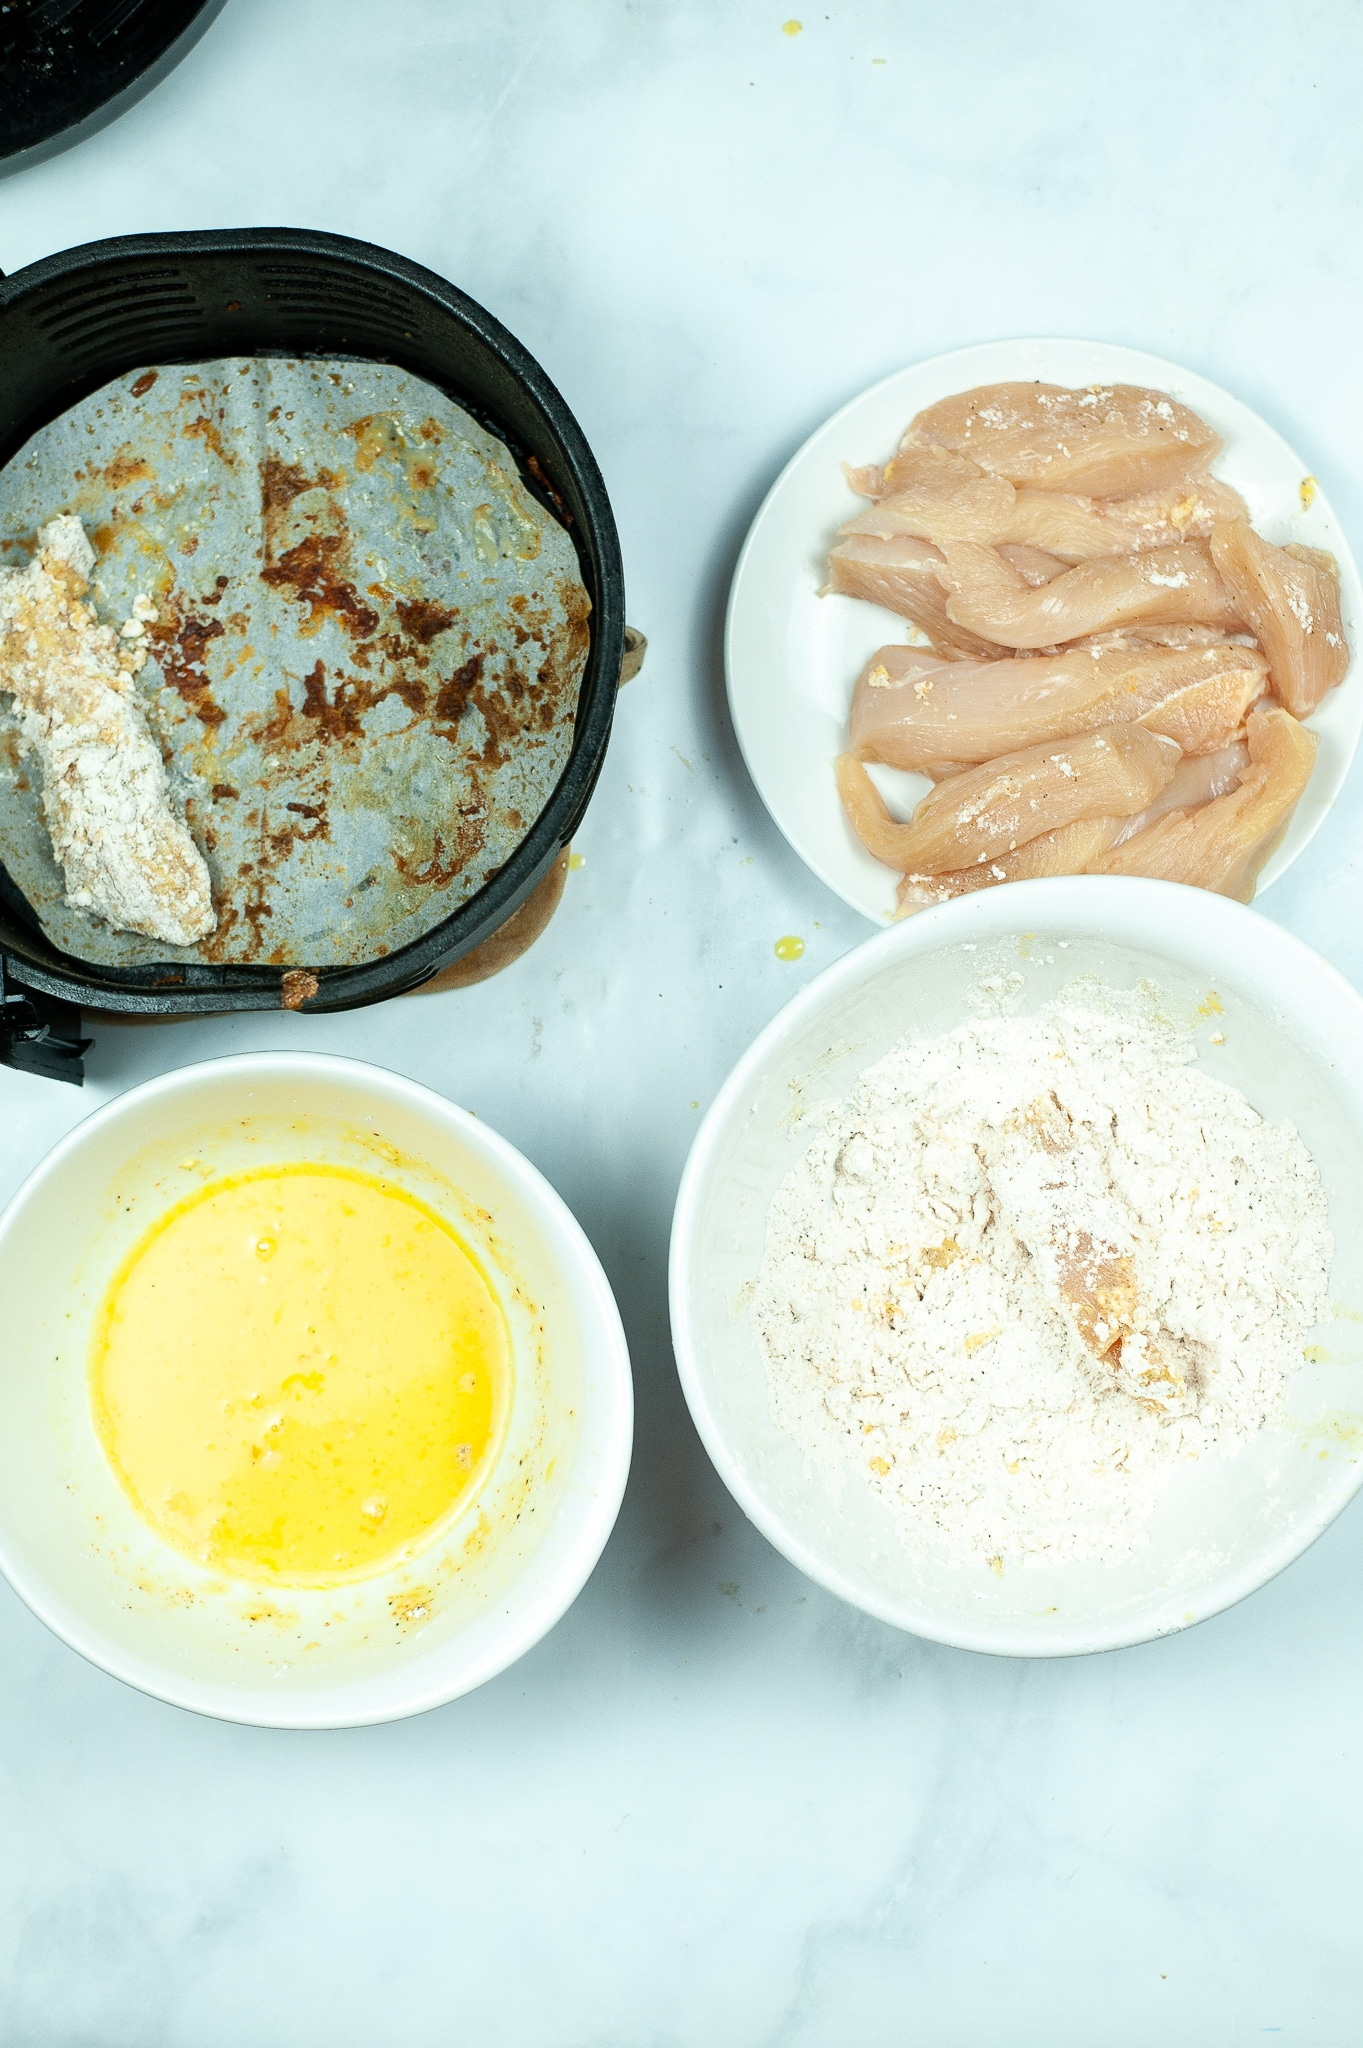 cut up raw chicken breasts, a bowl of flour, a bowl of egg, a coated chicken breast slice in the air fryer